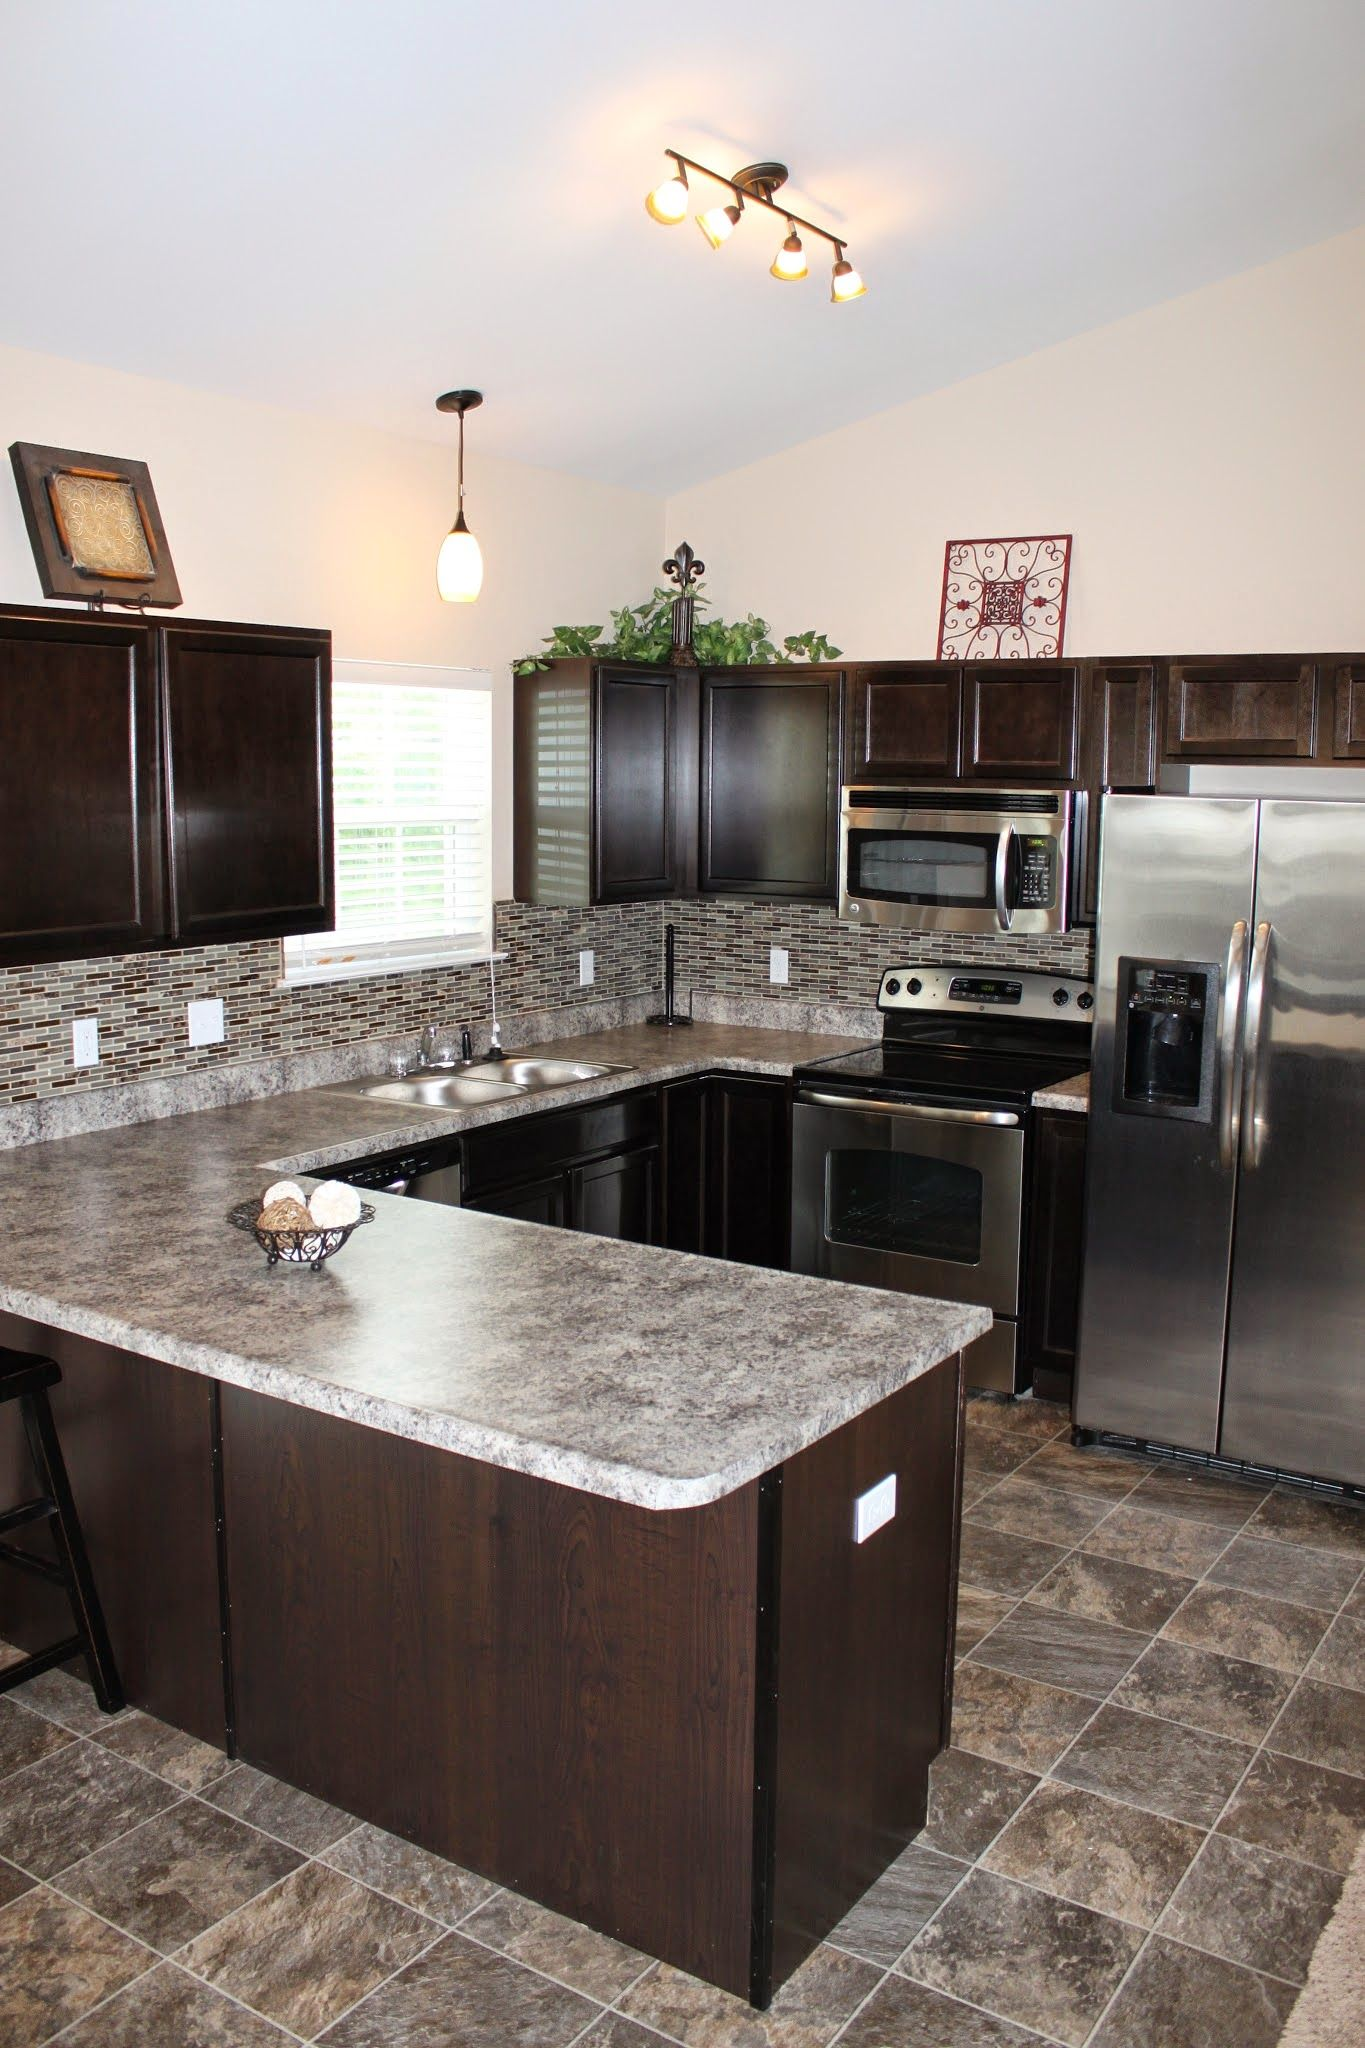 Kitchen featured in The Oceanside By Cannon Builders, Inc.  in St. Louis, MO